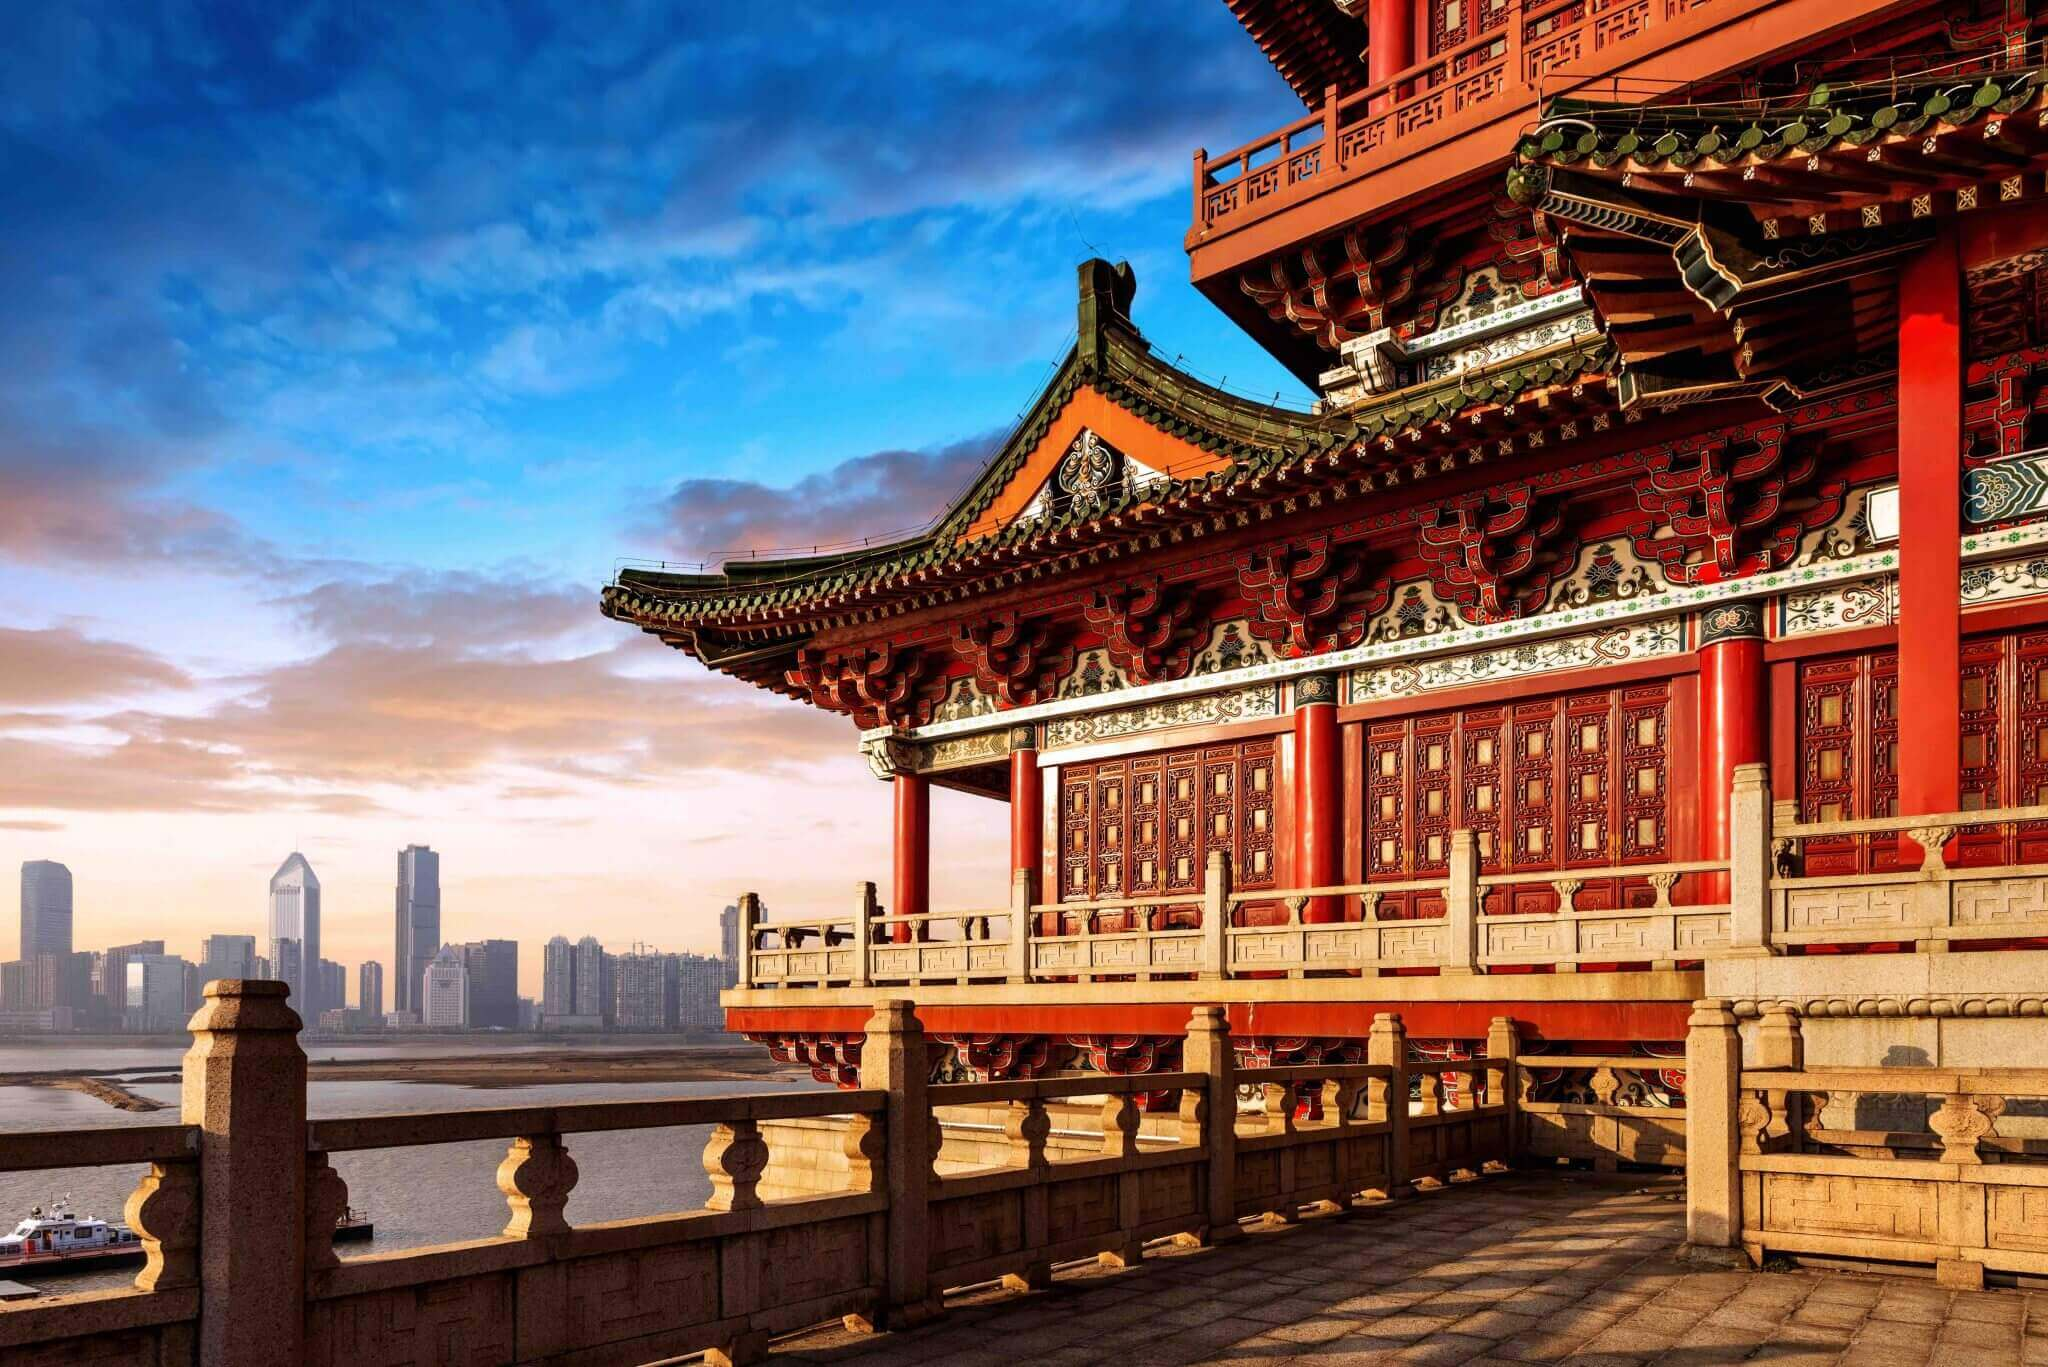 Expect These 3 Economic Trends for China in 2016